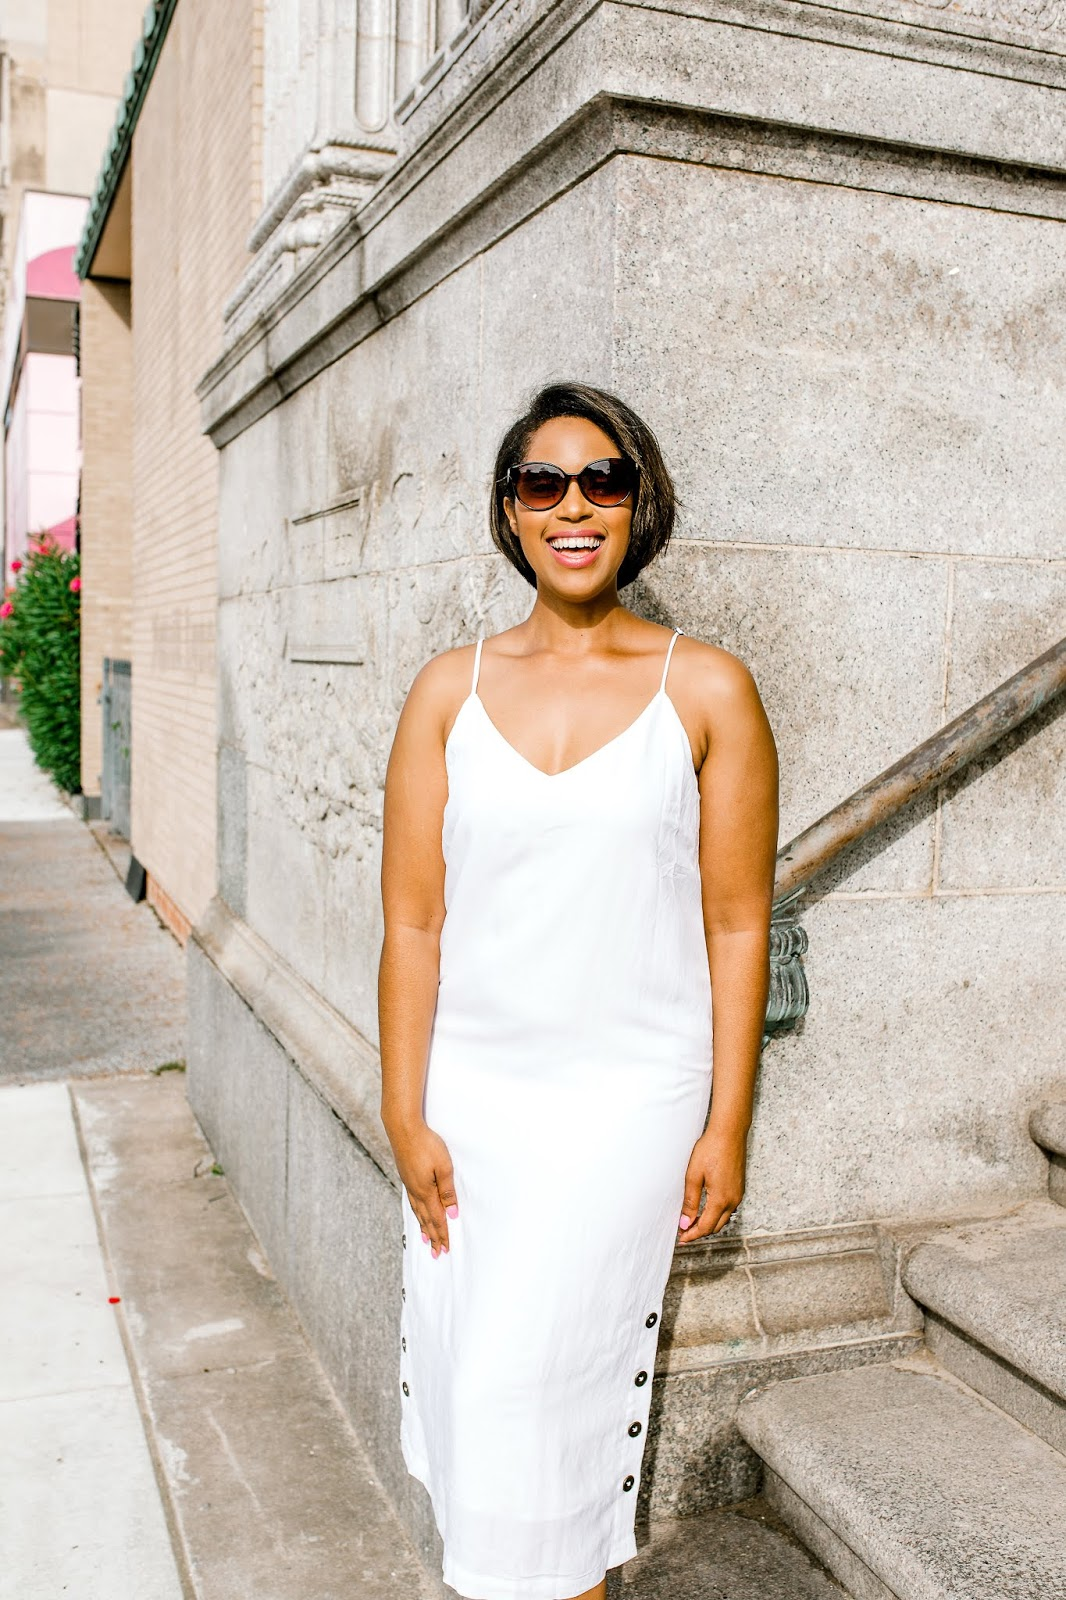 dd85028223d1 Usually it is all about the LBD being the staple in your closet, but for the  summer you need a LWD or little white dress. Just like the LBD it needs to  ...